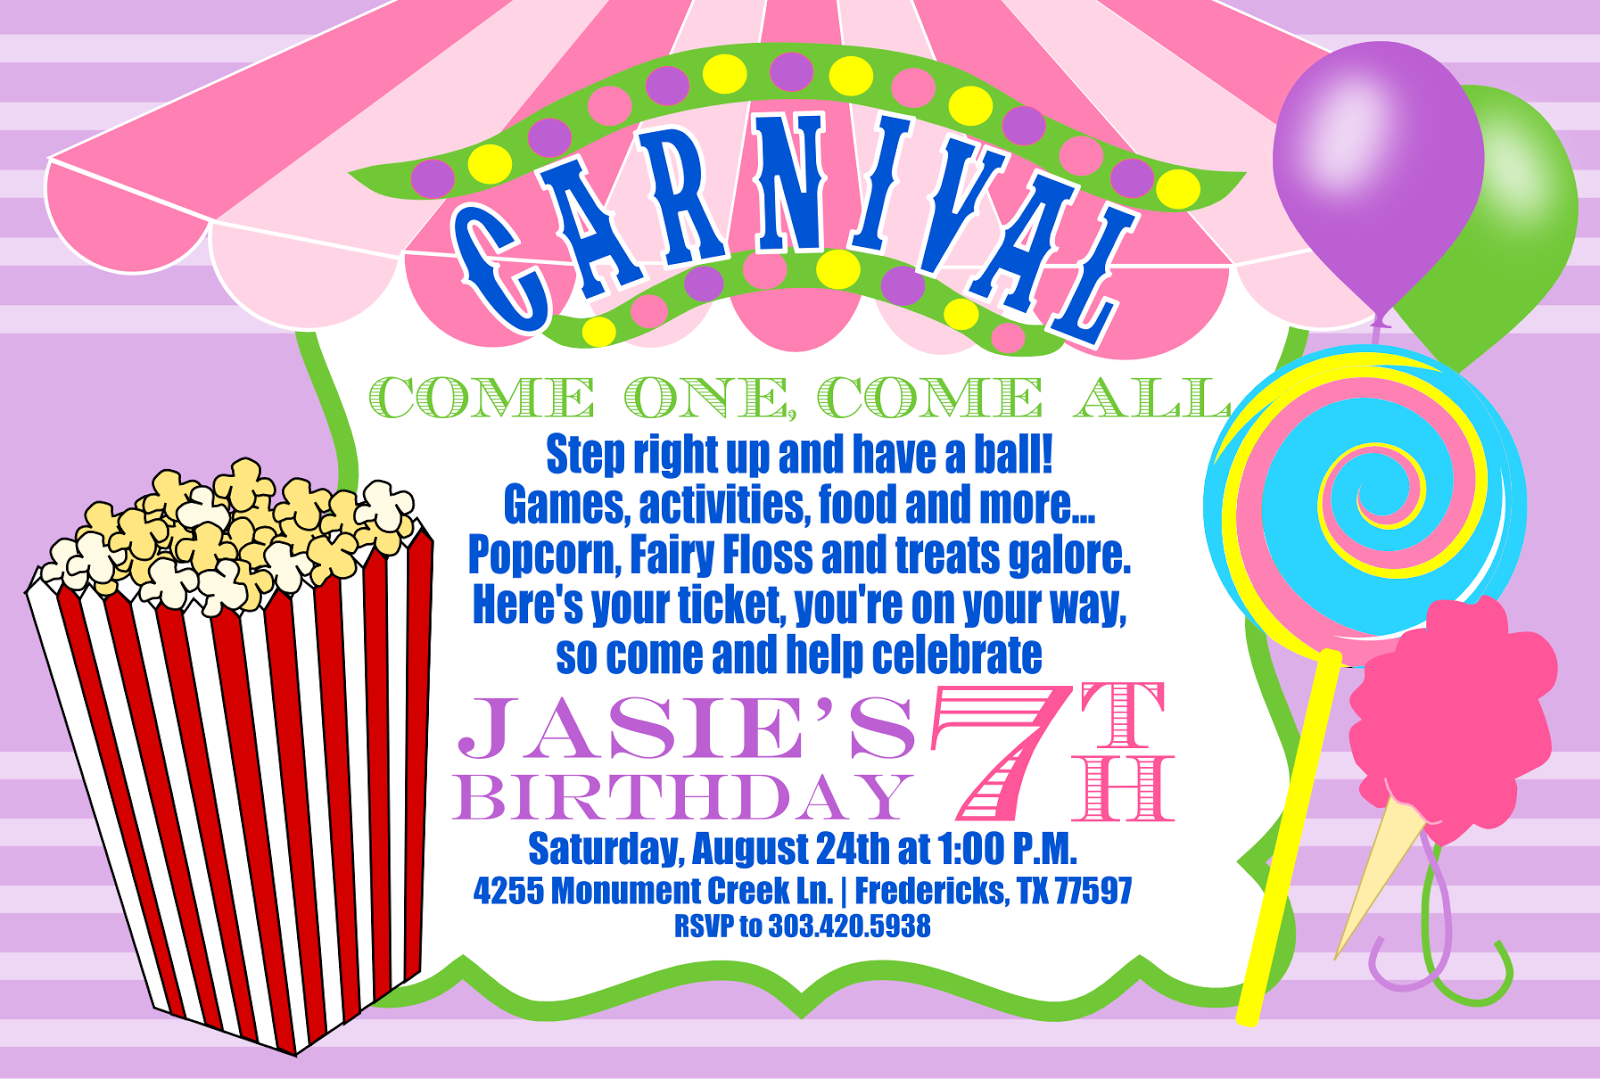 Signatures by Sarah: Carnival birthday party invite for Amanda